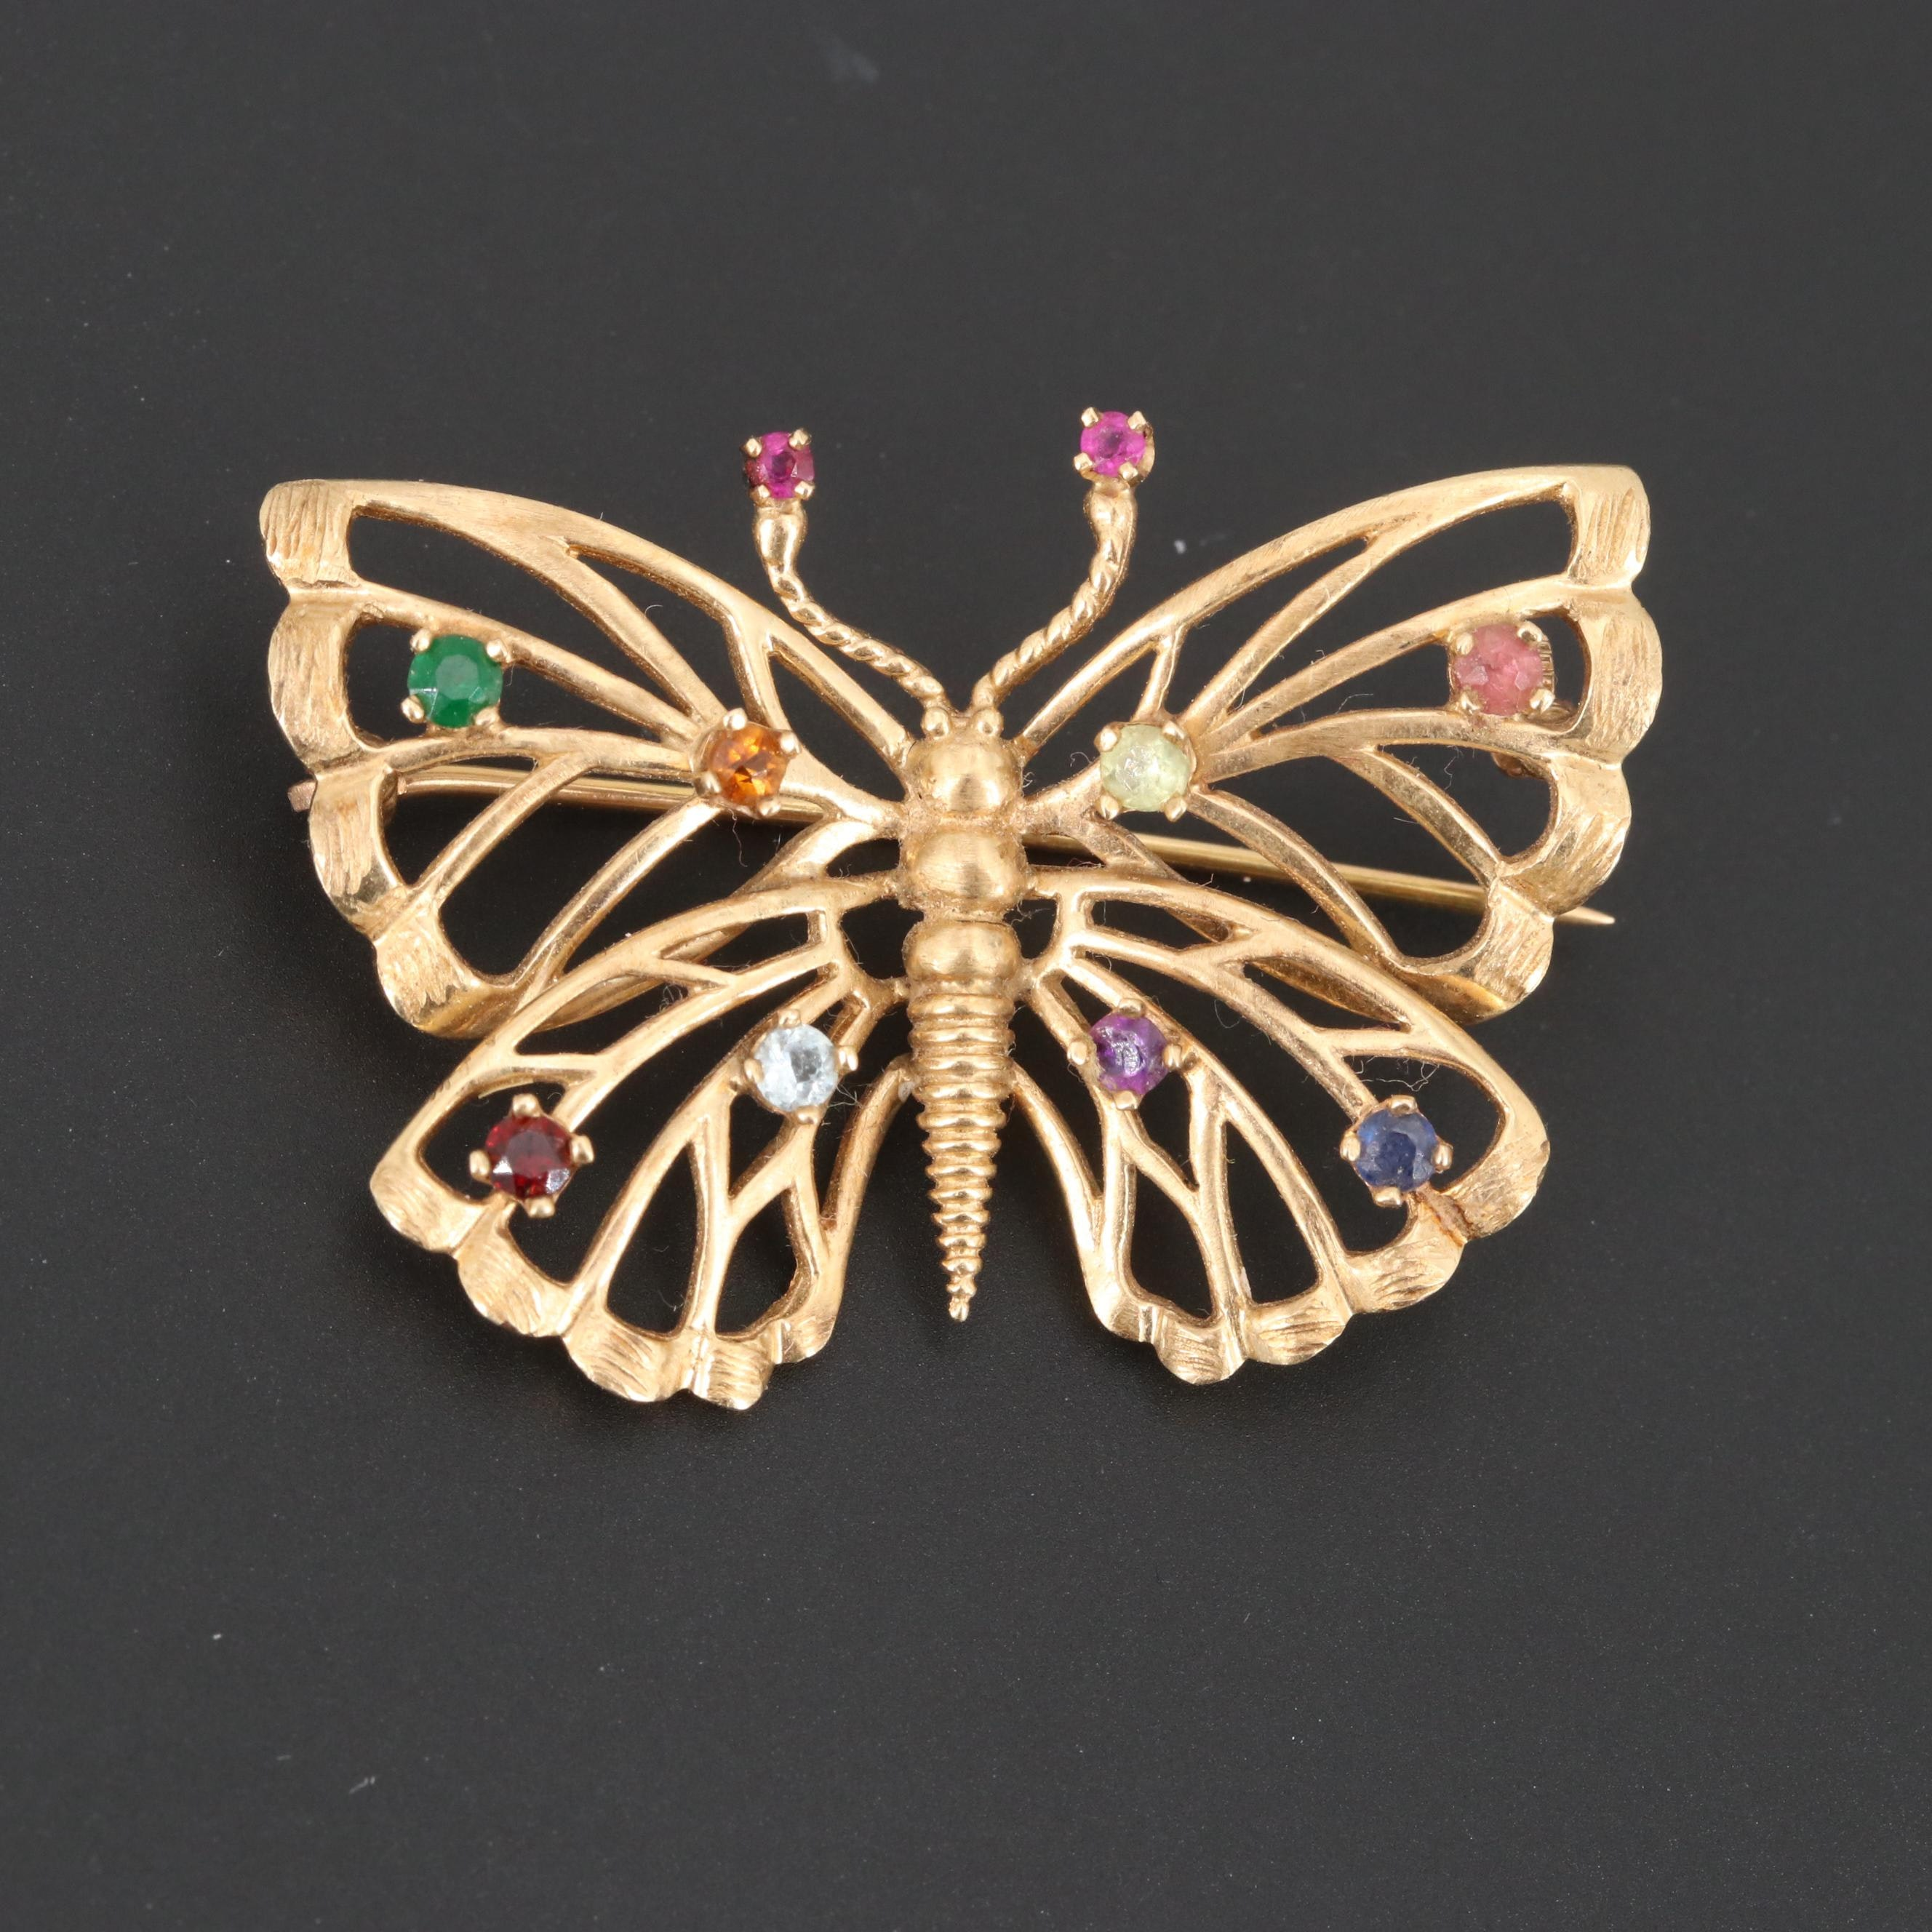 14K Yellow Gold Gemstone Butterfly Brooch Featuring Ruby and Aquamarine